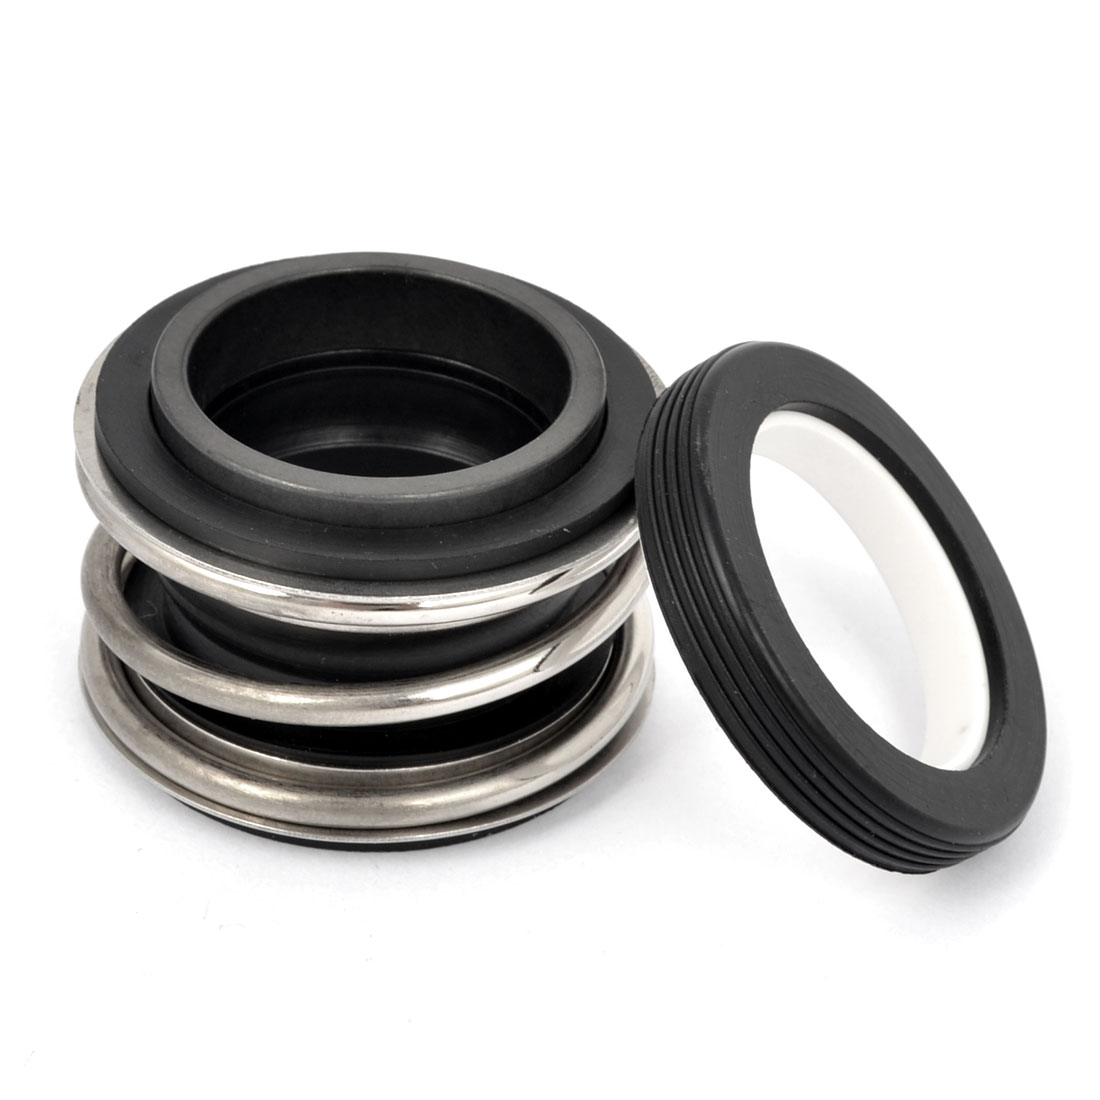 27mm Internal Diameter Rubber Single Coil Bellows Spring Mechanical Seal